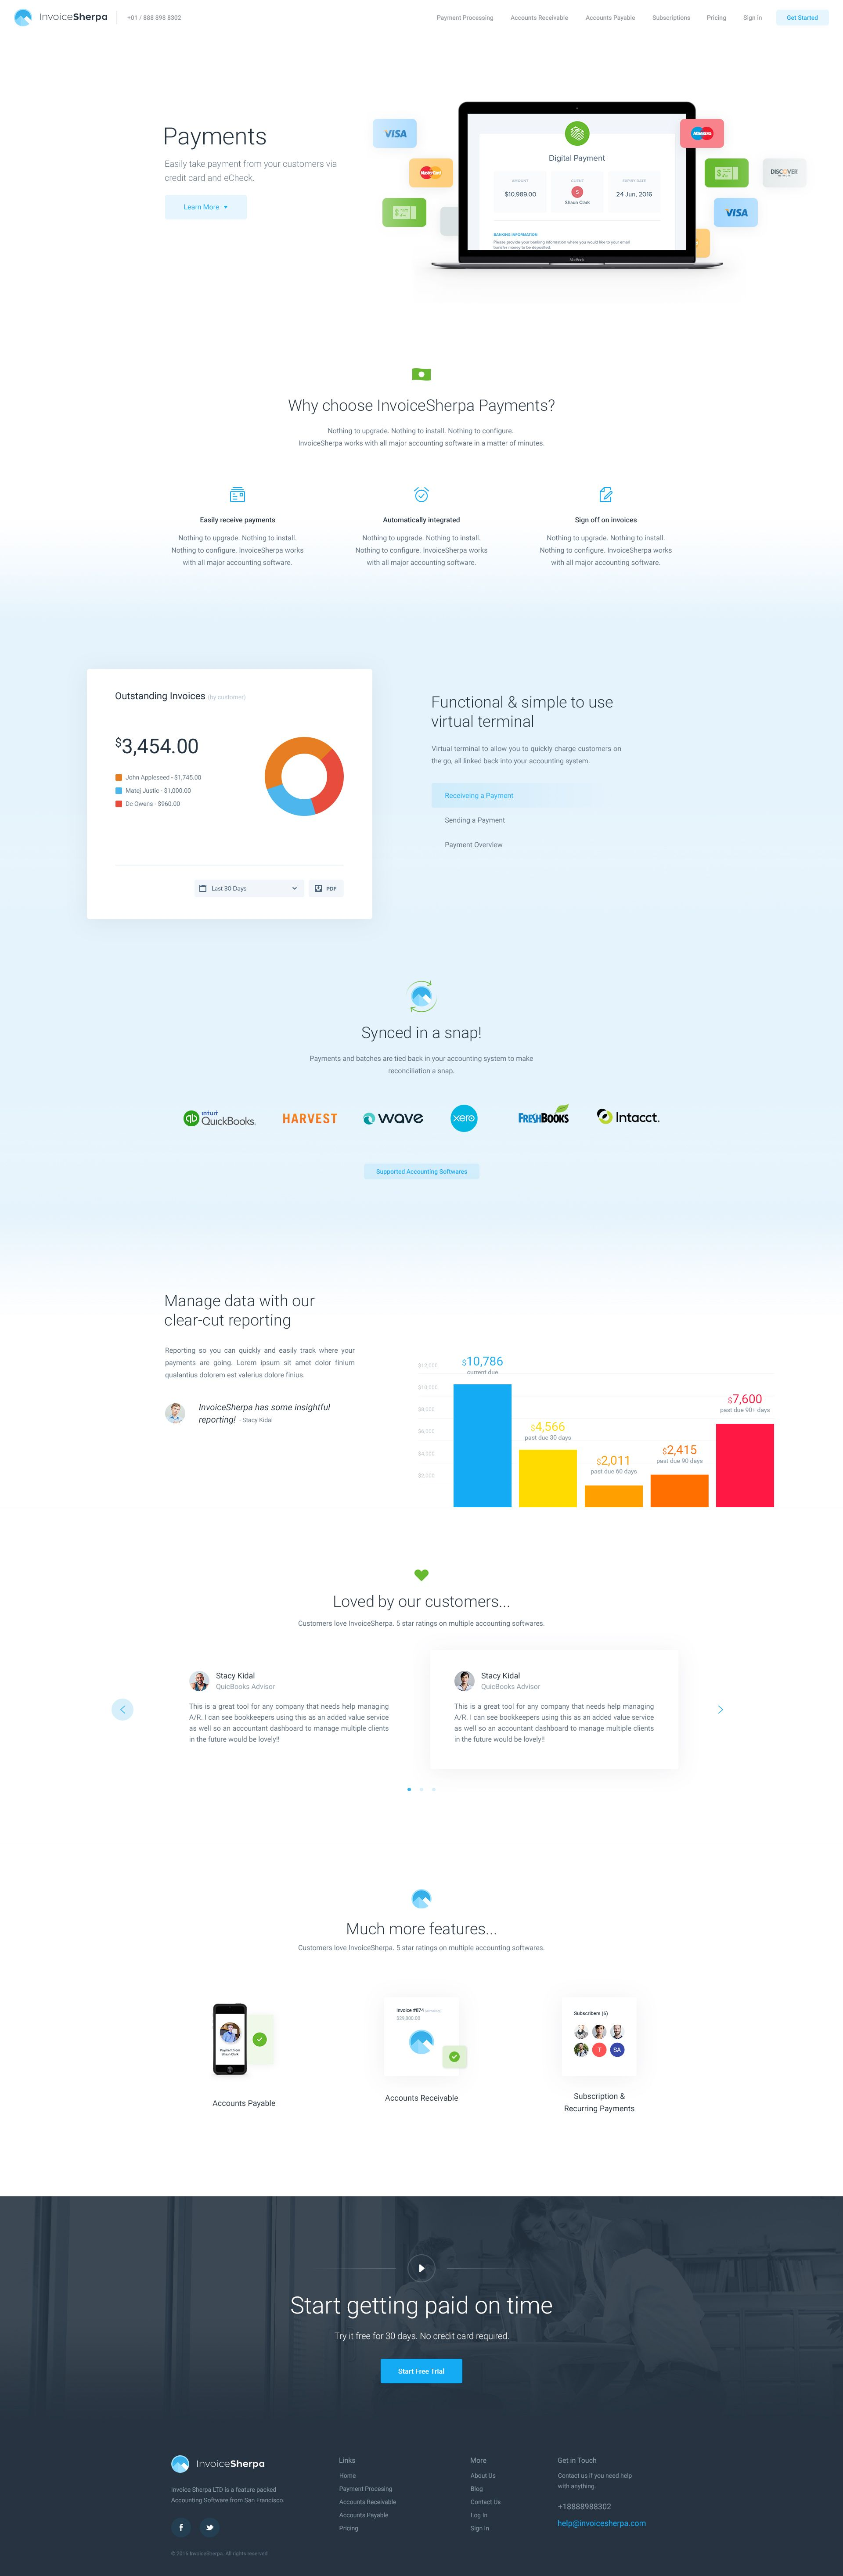 Invoice Sherpa Payments Page (With images) Web design